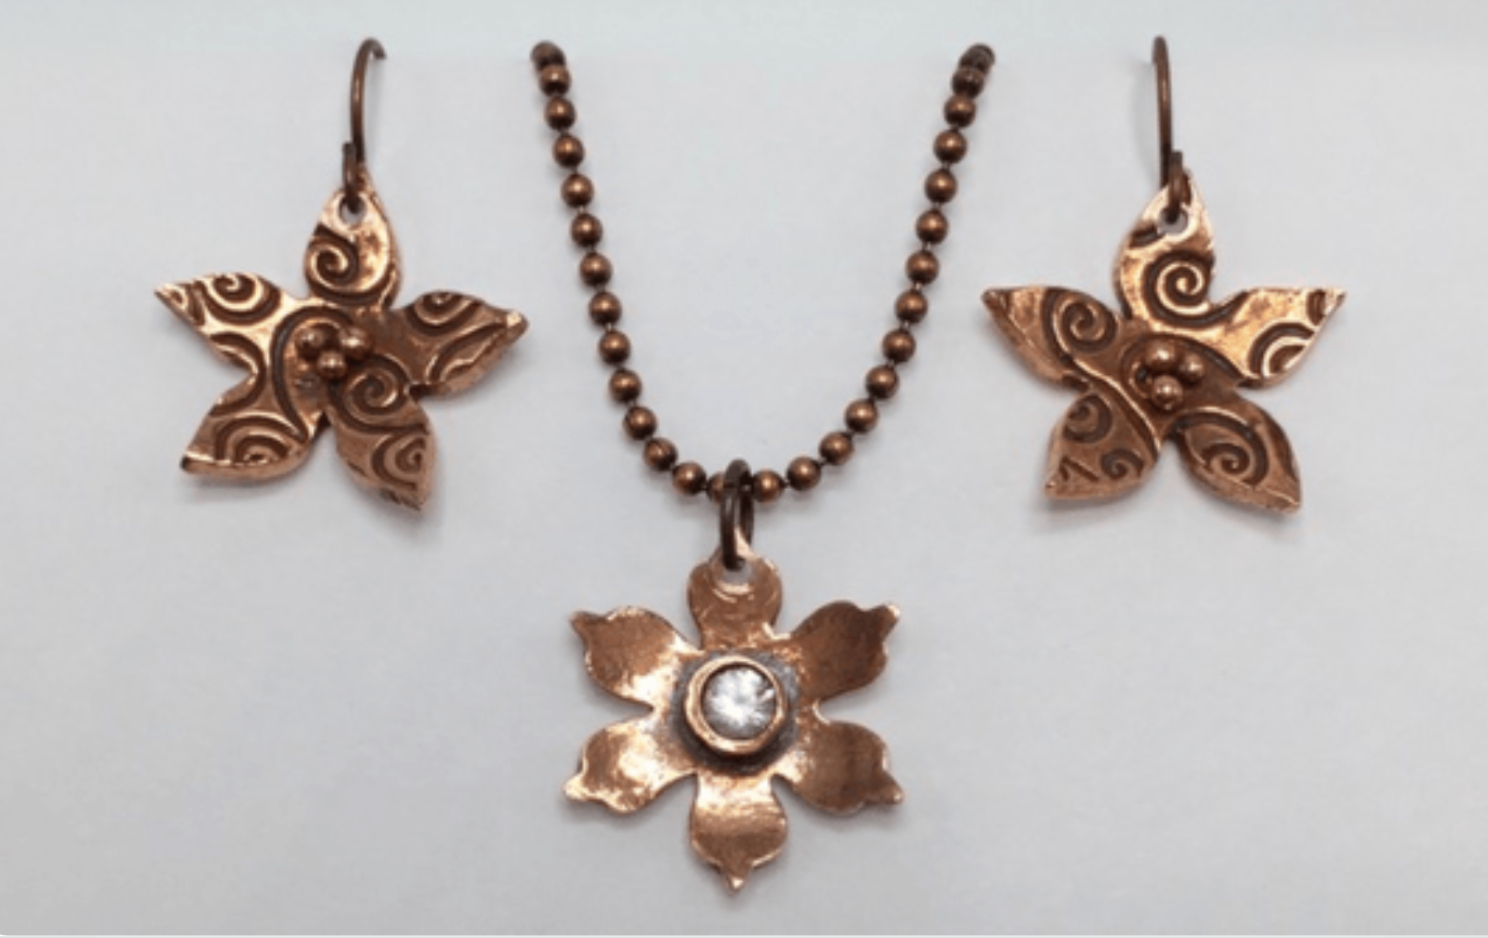 Copper Clay Creations